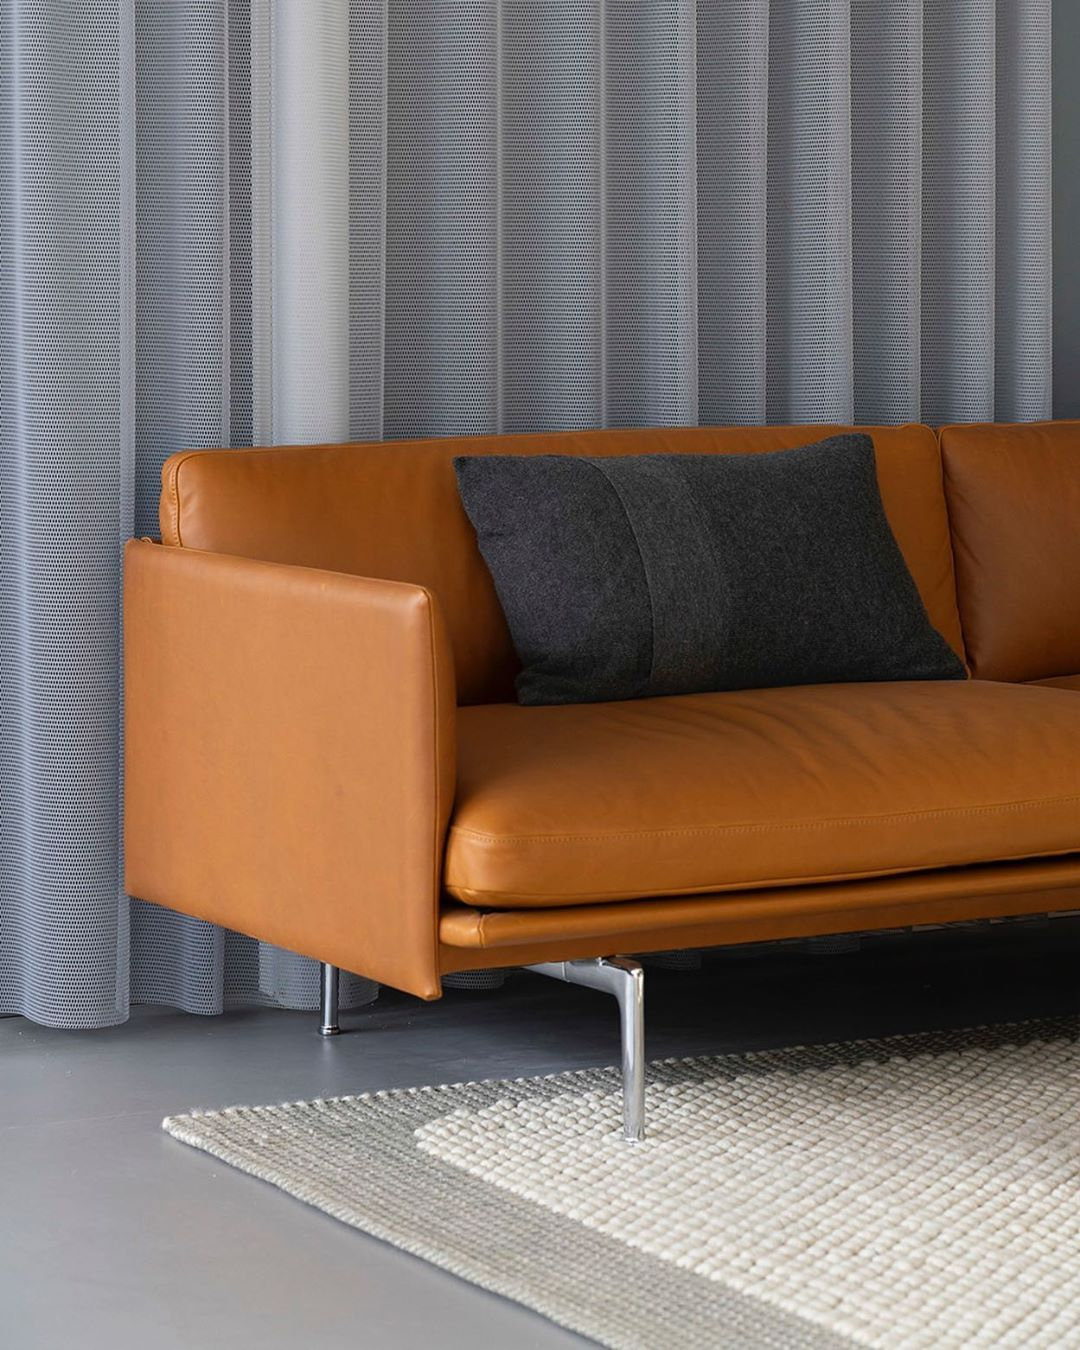 Refined Expressions Of The Outline Sofa With A Base In Polished Aluminum Paired With Scandinavian Sofa Design Leather Sofa Decor Living Room Decor Inspiration